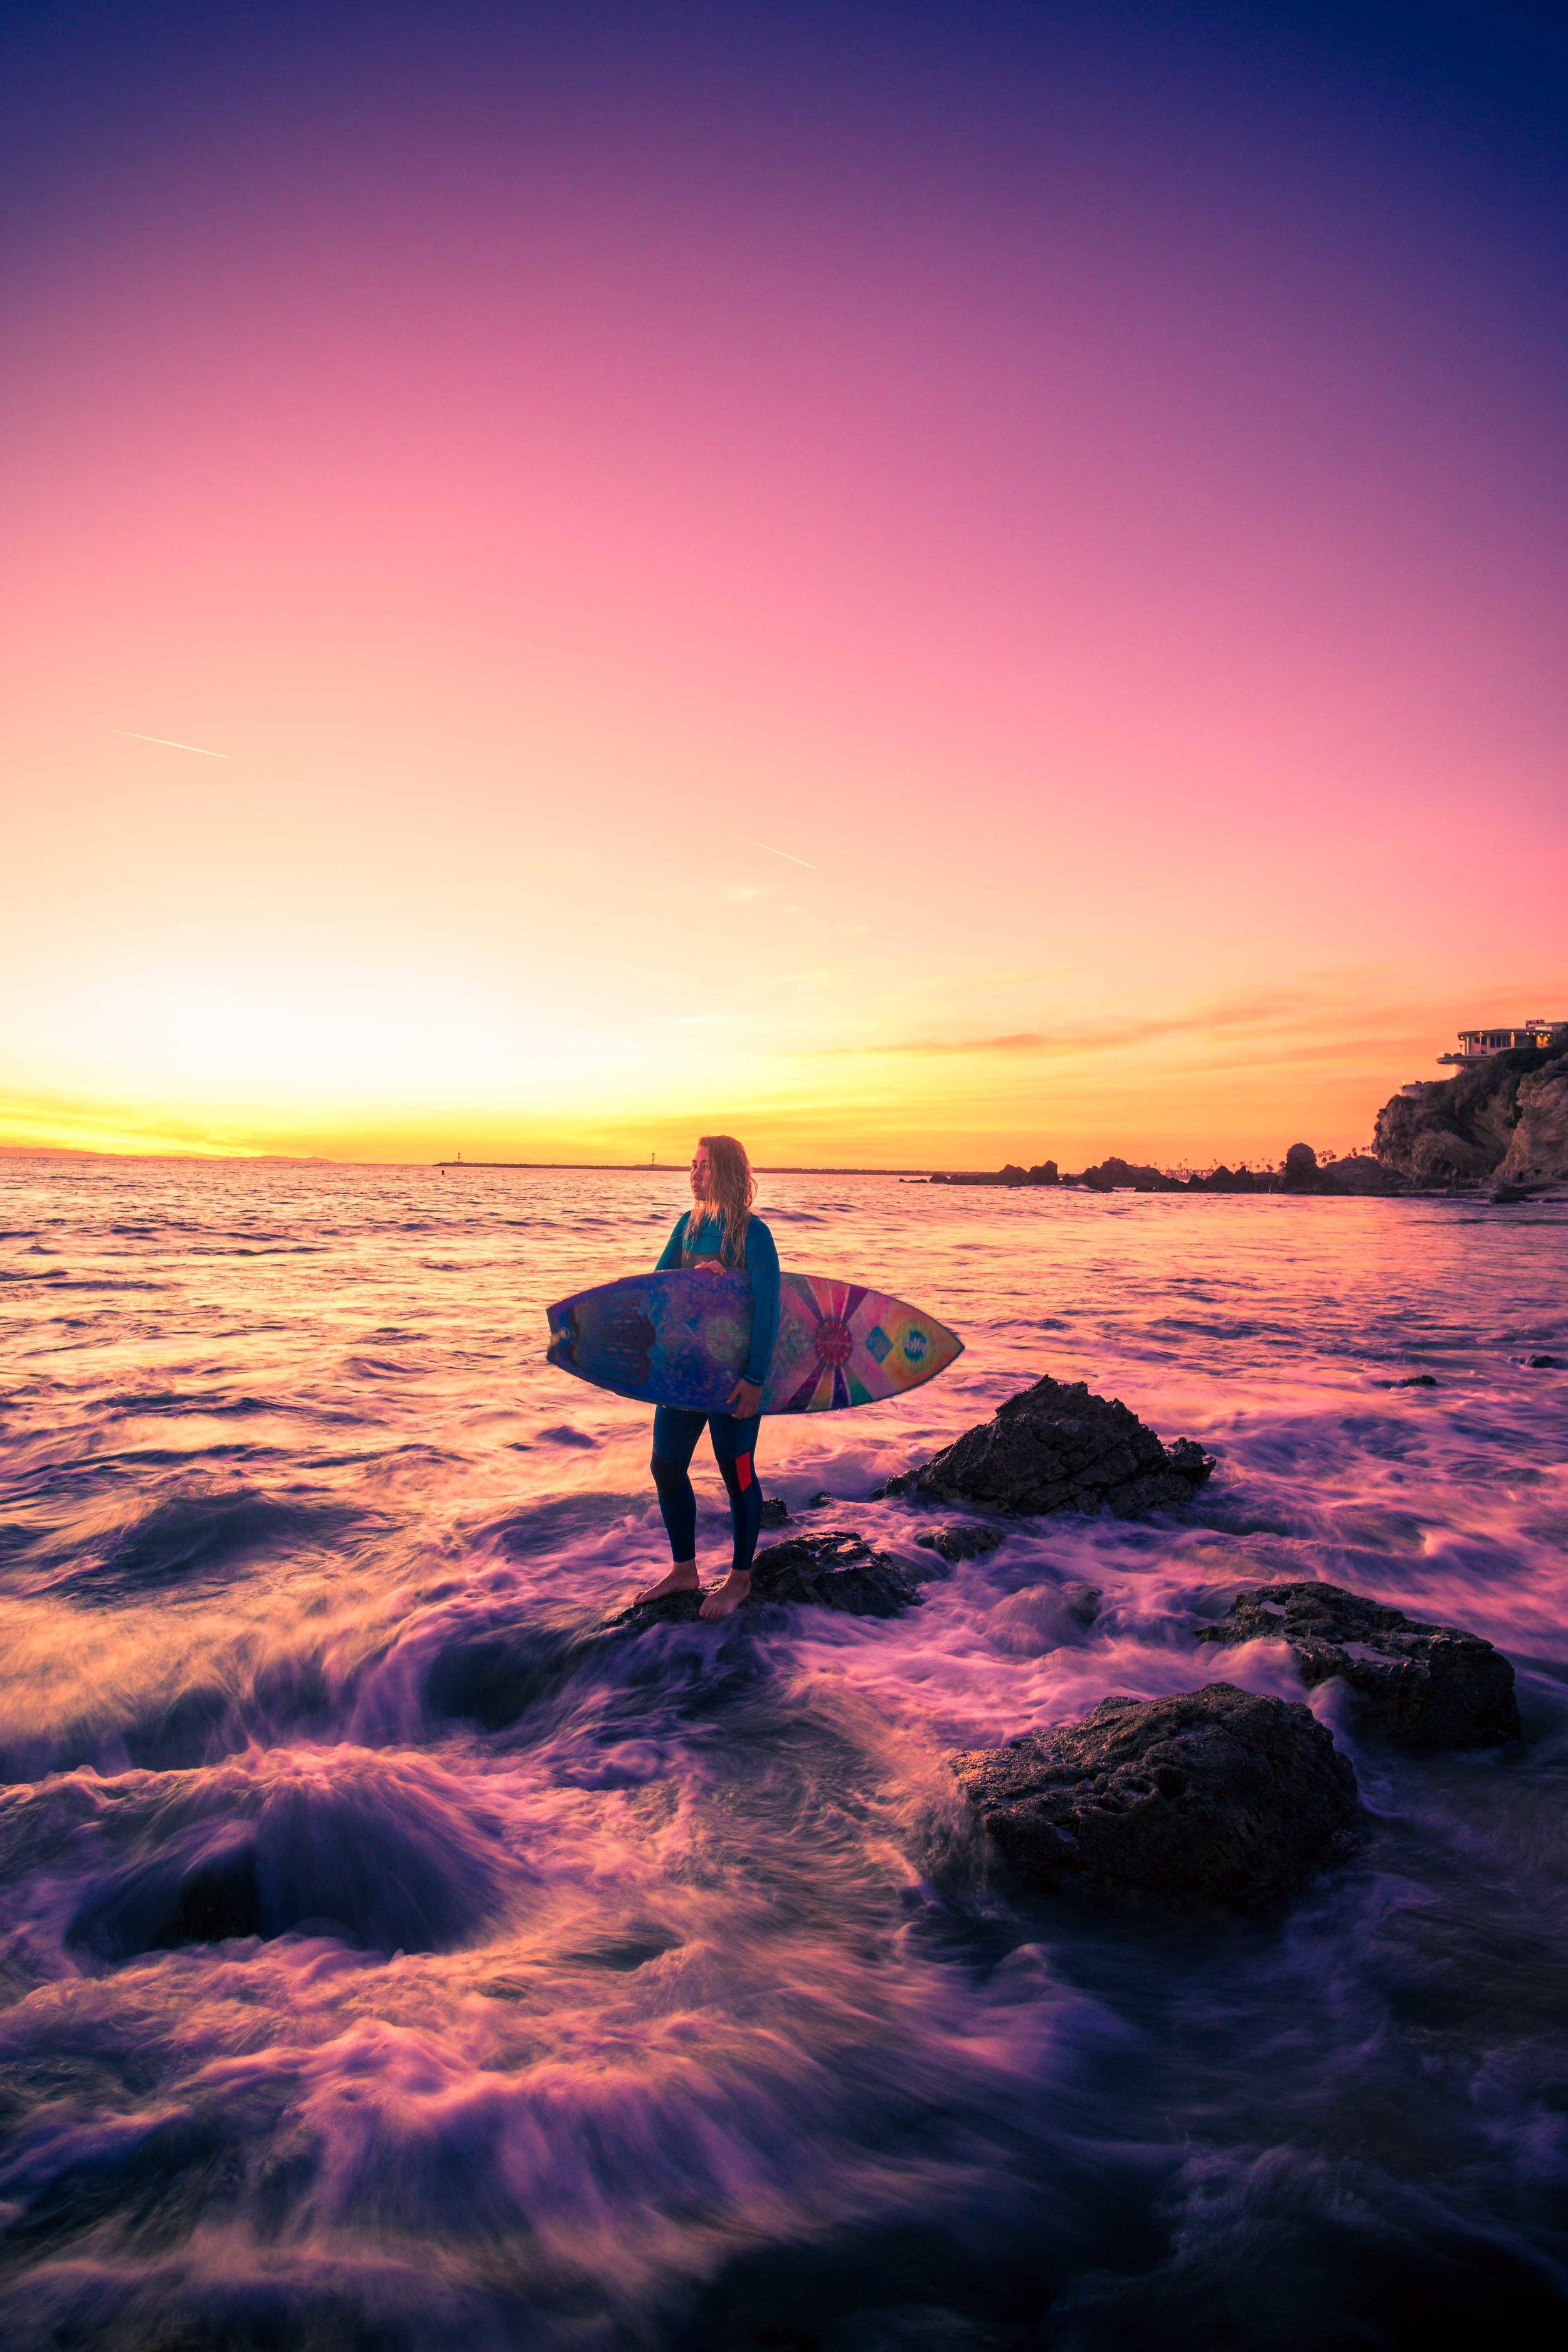 A wide-angle portrait of a surfer girl standing in the waves using long exposure techniques during a Golden and purple California sunset at little corona beach in orange county